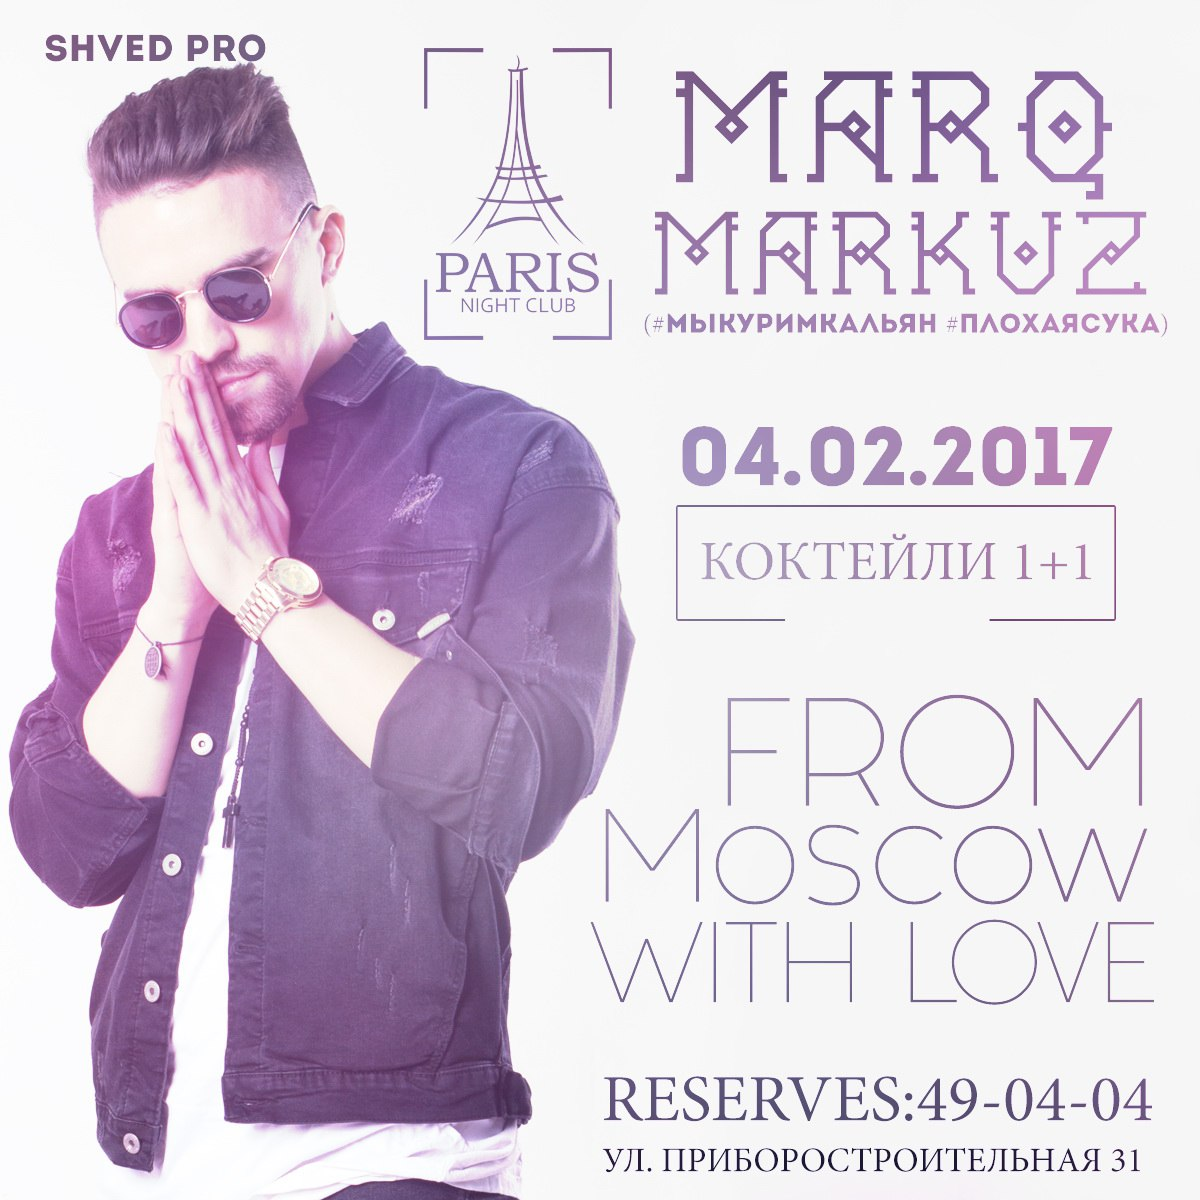 Marq Markuz «From Moscow with Love»